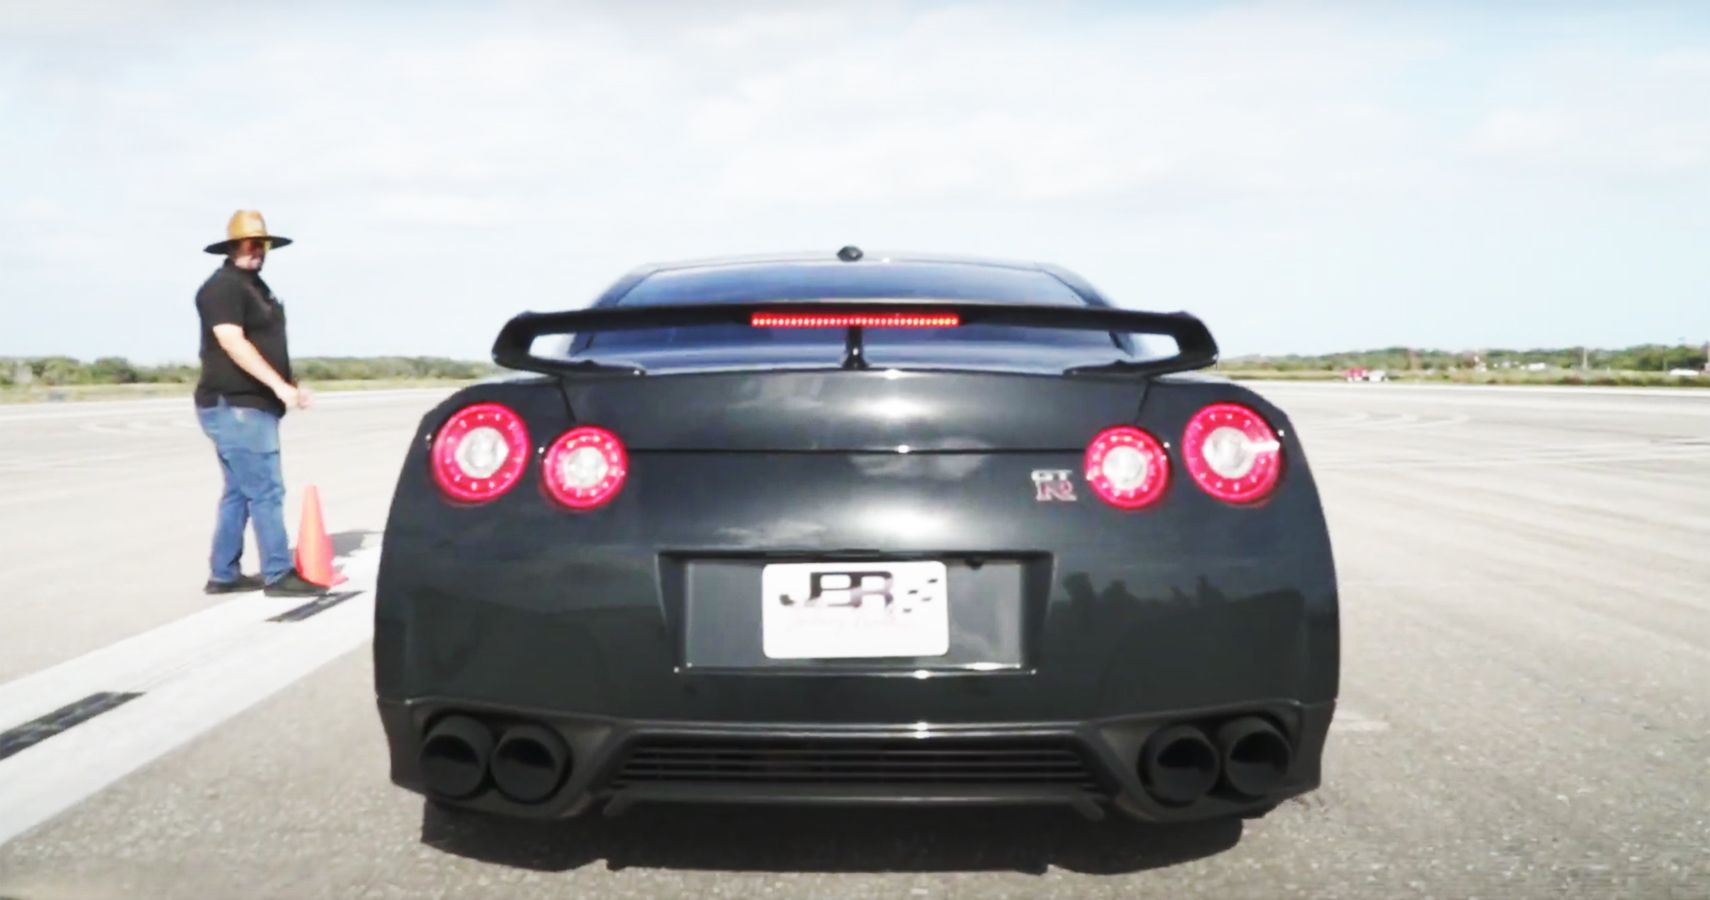 Witness Switzer's Upgraded Nissan GT-R Hit 165.7 MPH In Half-Mile Run